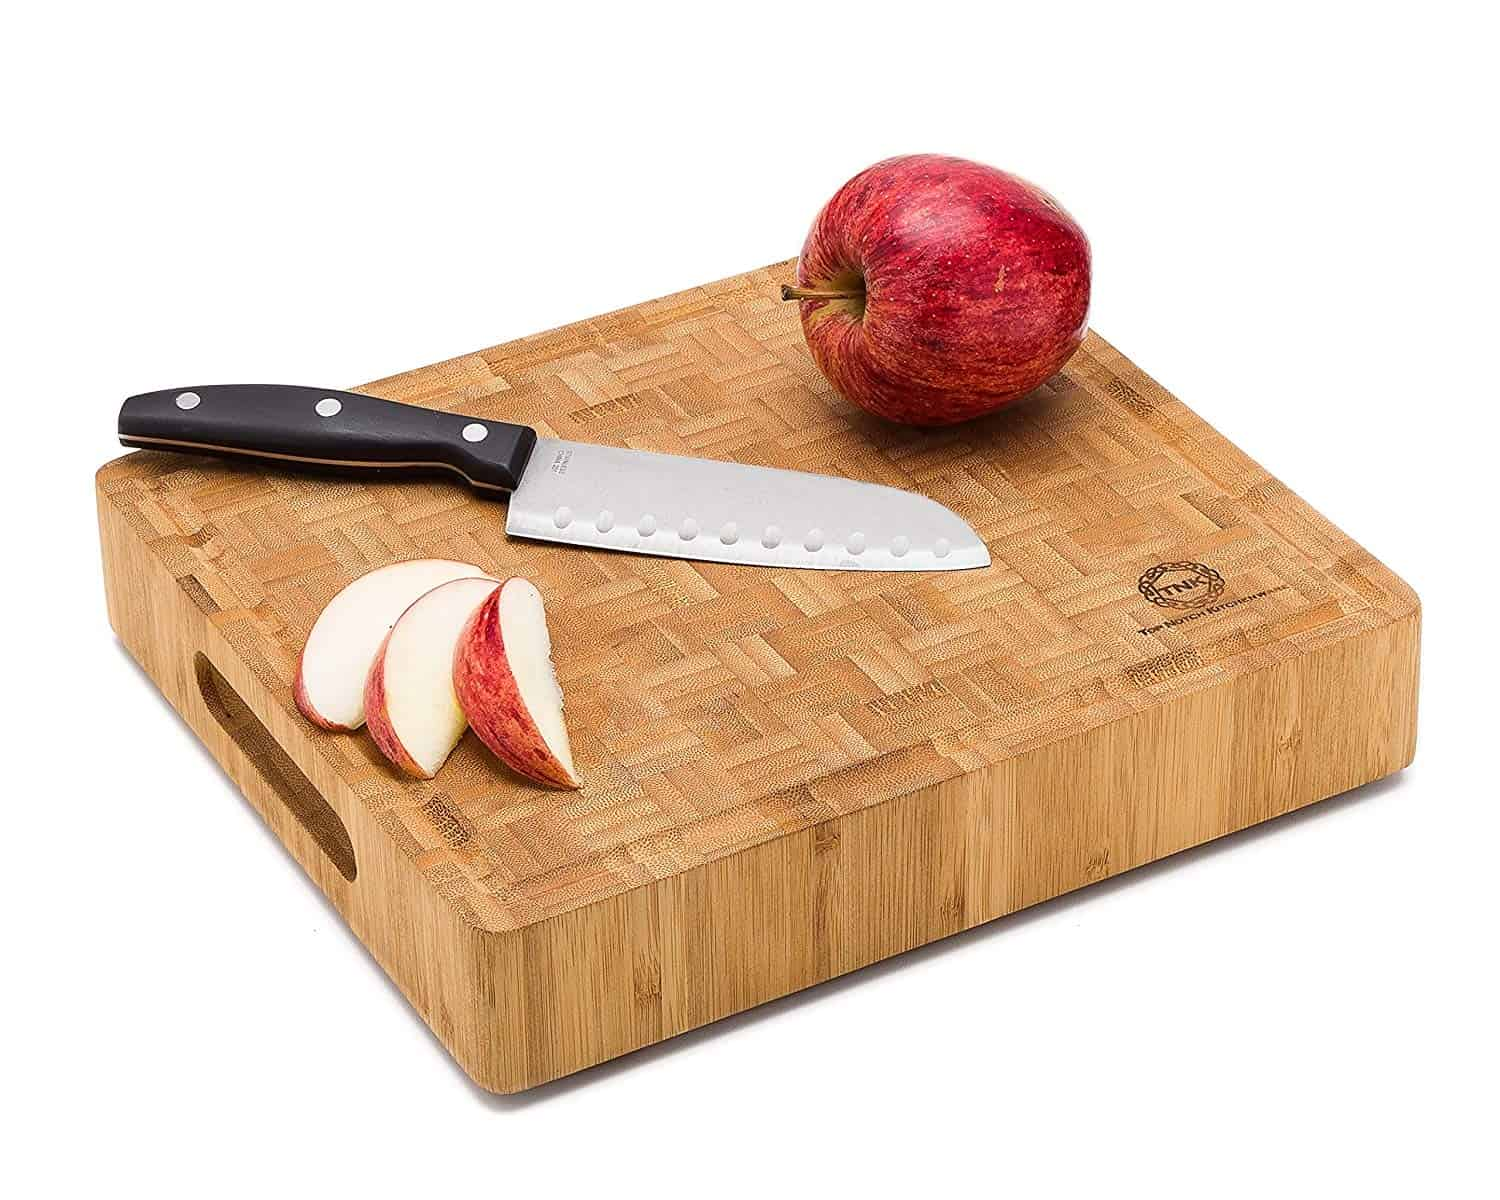 Small End Grain Bamboo Cutting Board Butcher Block by Top Notch Kitchenware